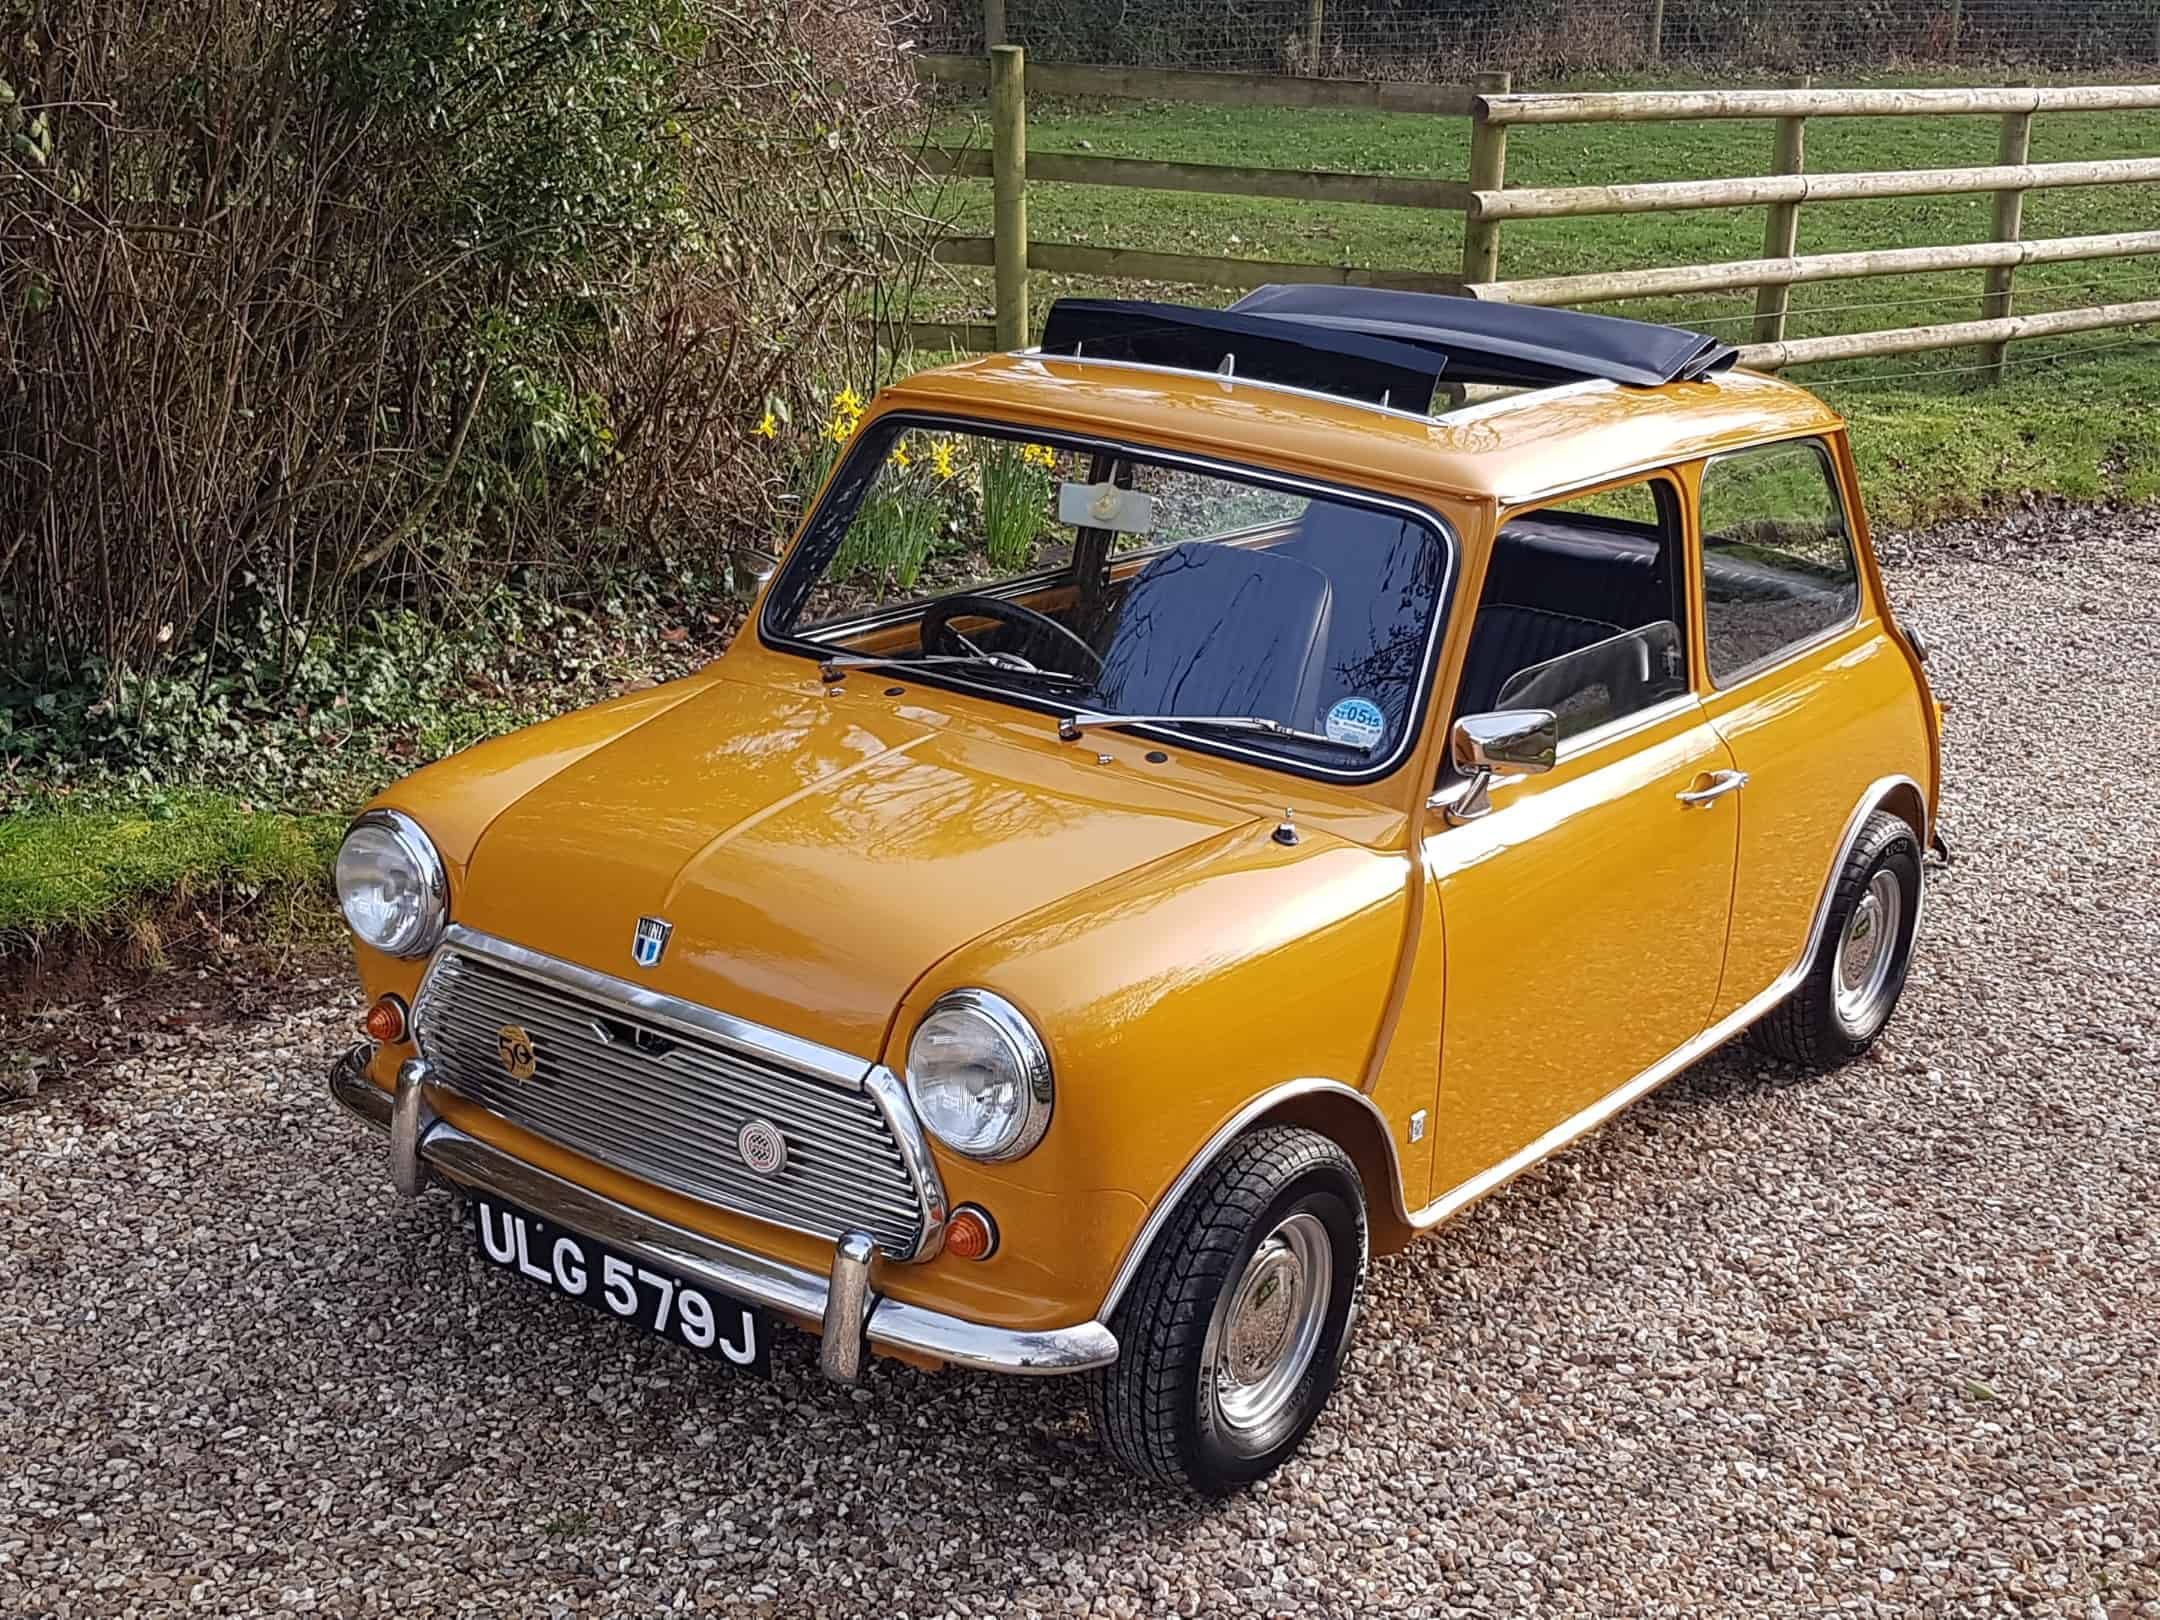 ** NOW SOLD ** 1970 Mk 3 1275 Cooper S 'Swiftune' (2 owners in 51 years)